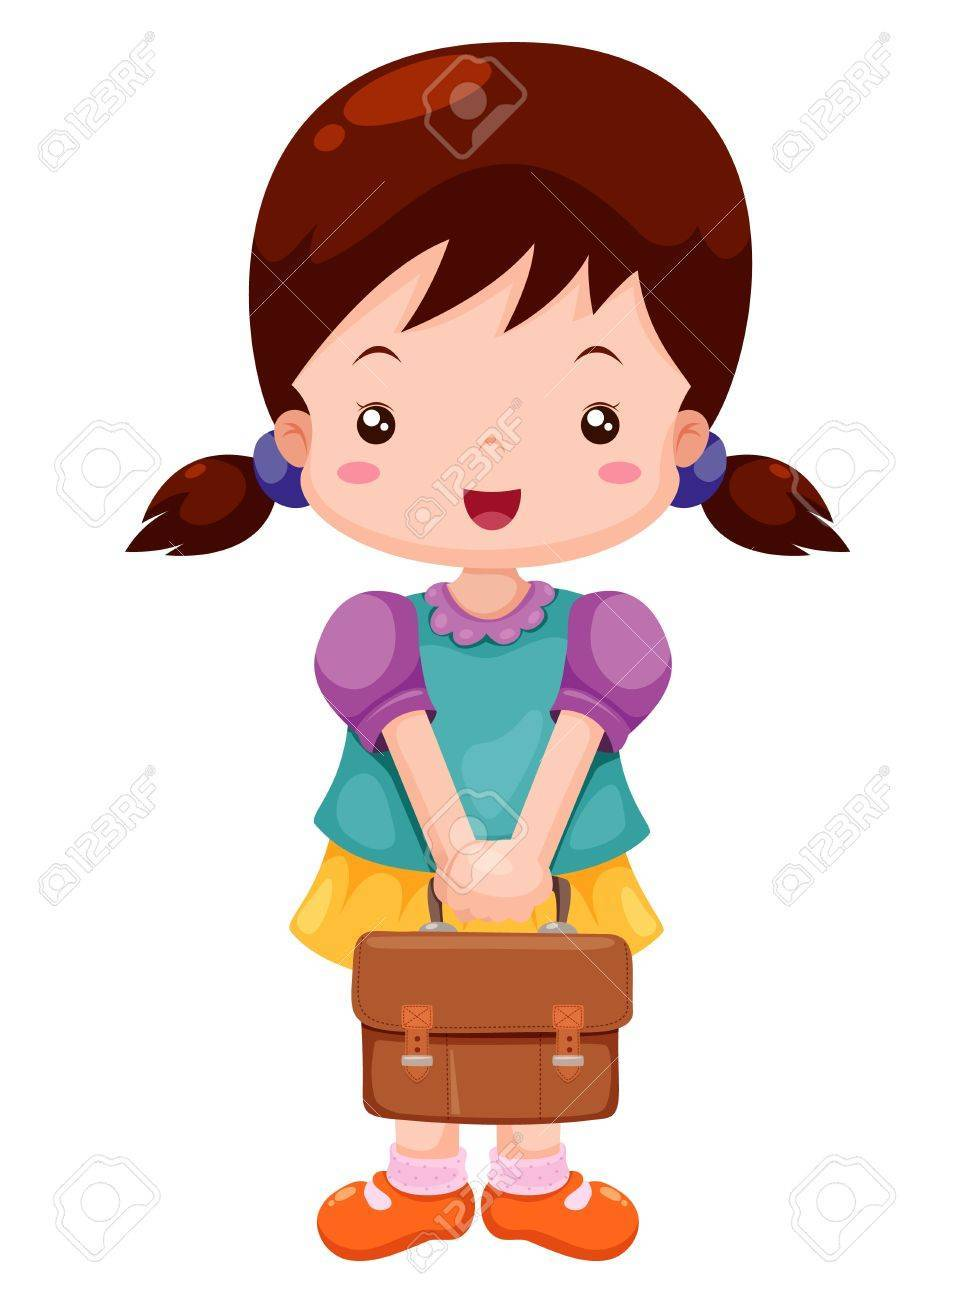 Clipart fille clip art library download Clipart fille 1 » Clipart Portal clip art library download